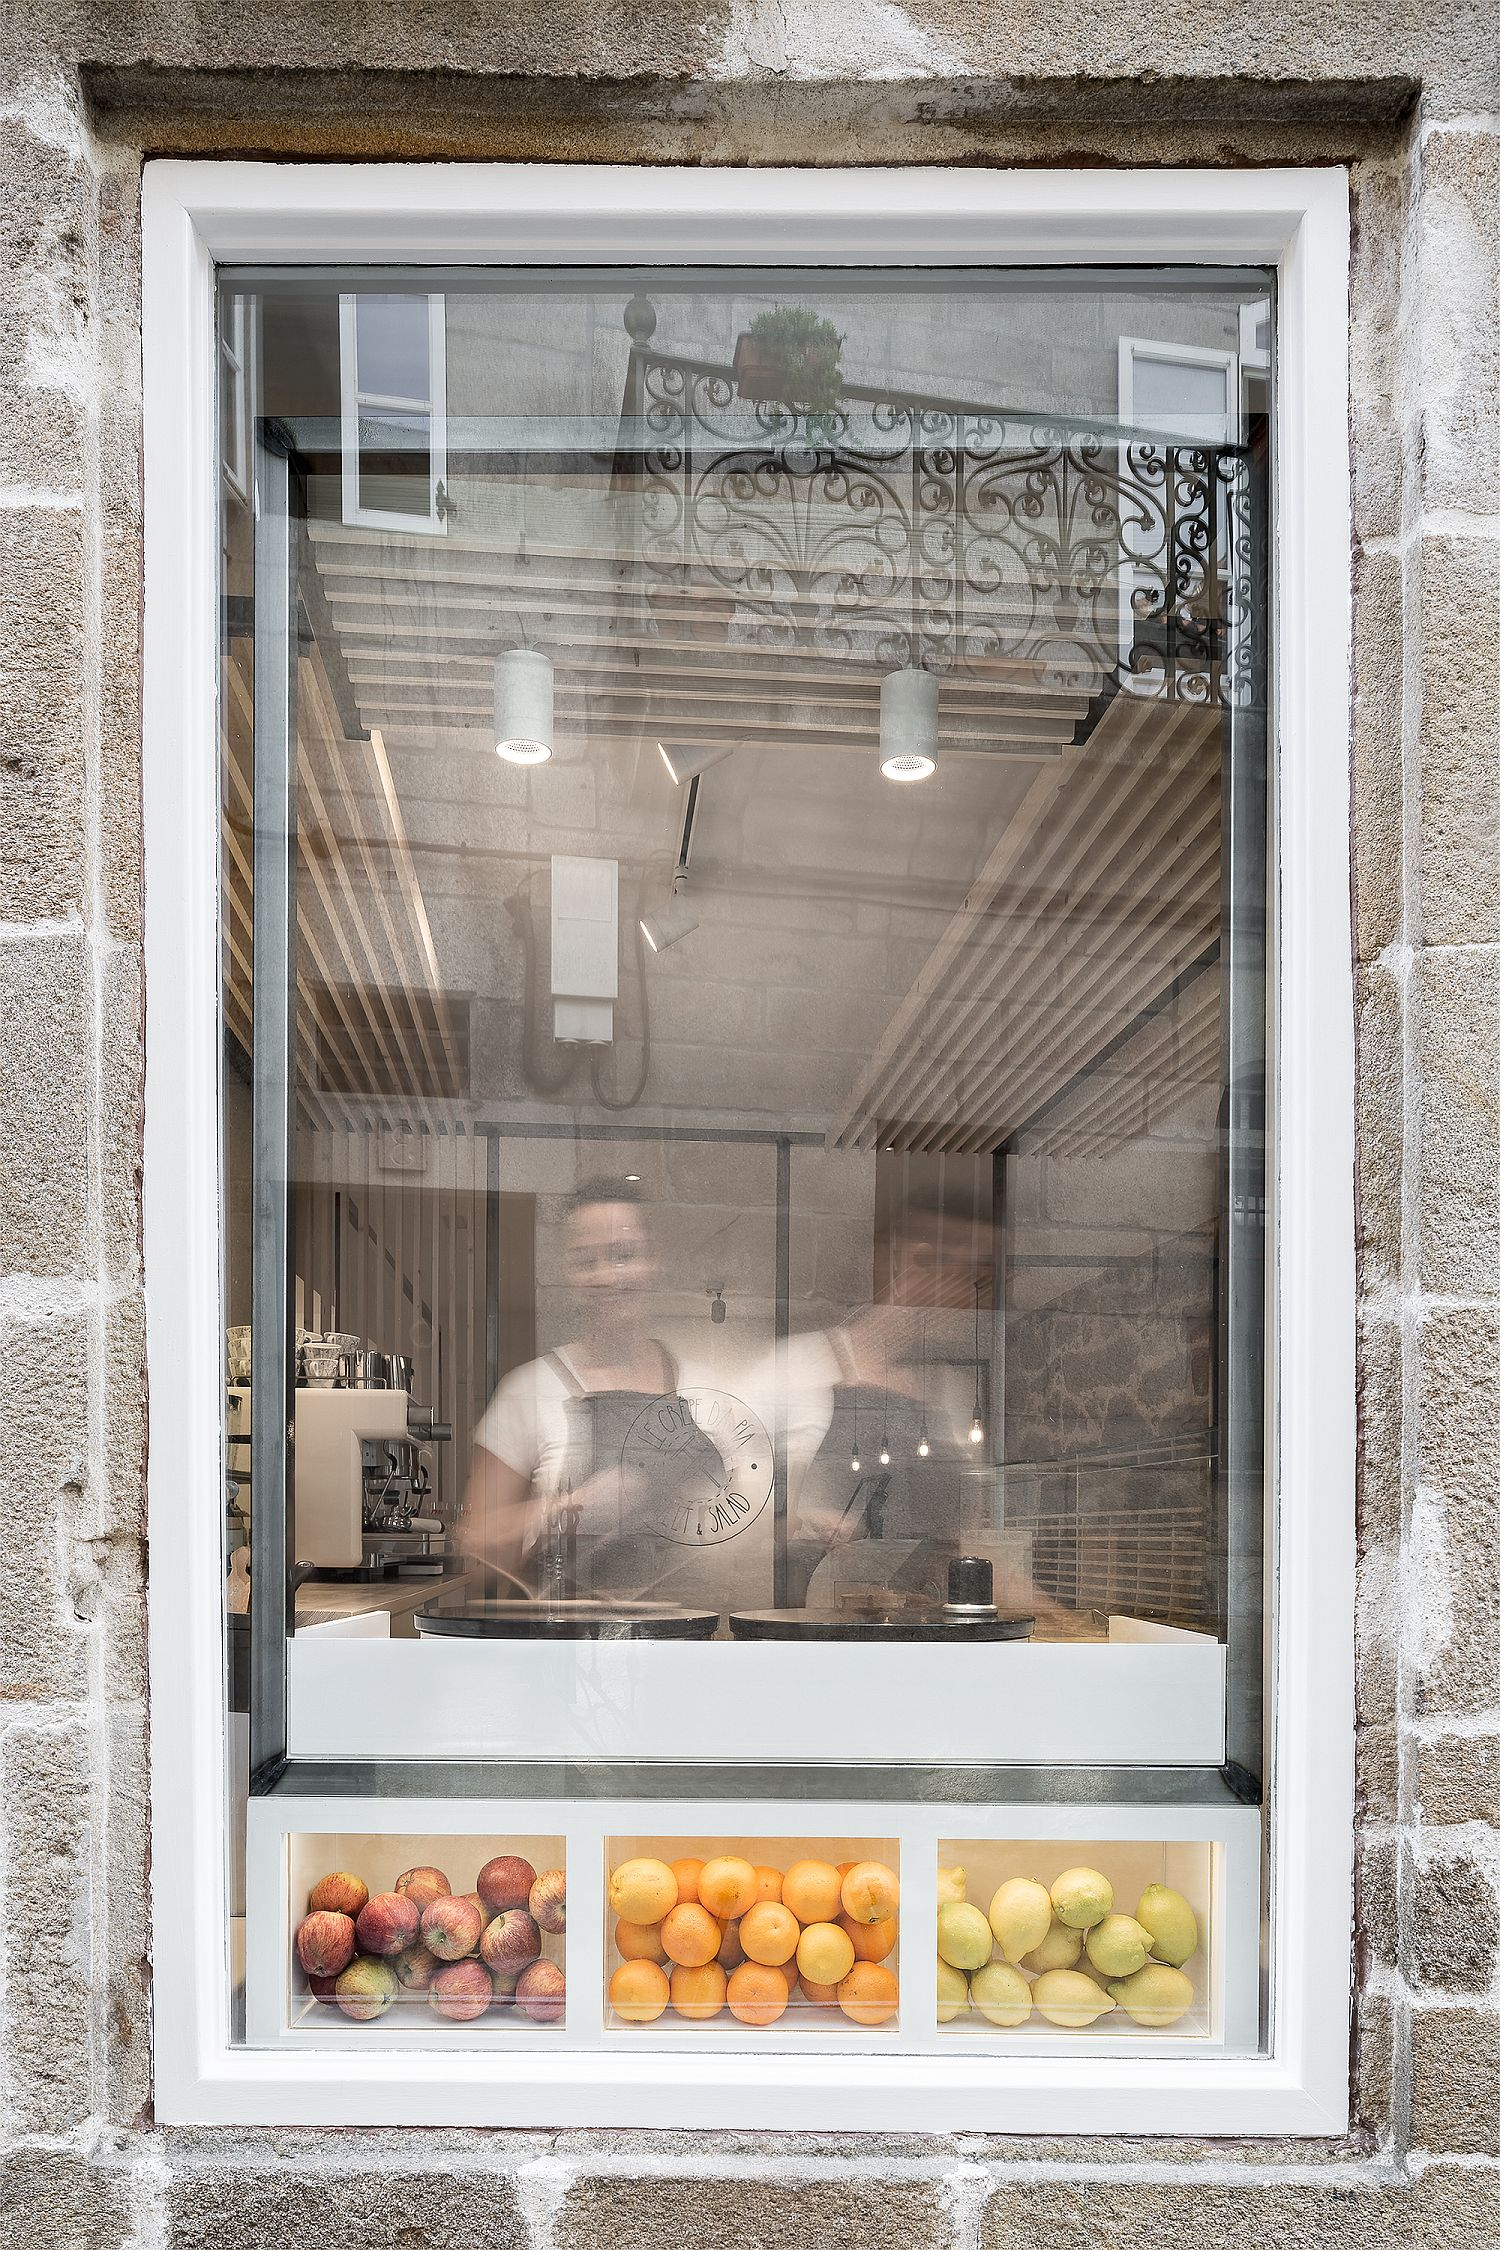 Windows towards the street showcase the making of delicacies inside